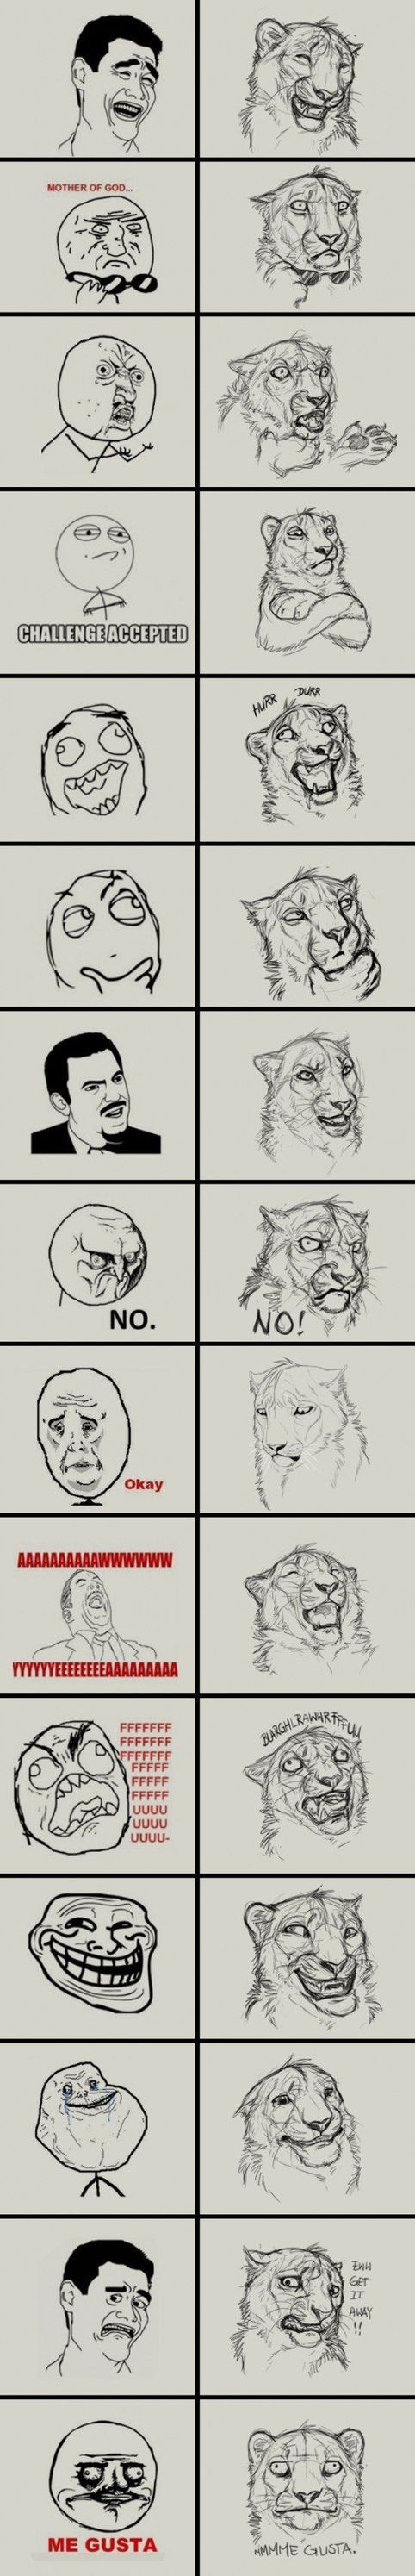 cat faces lolcats Humor